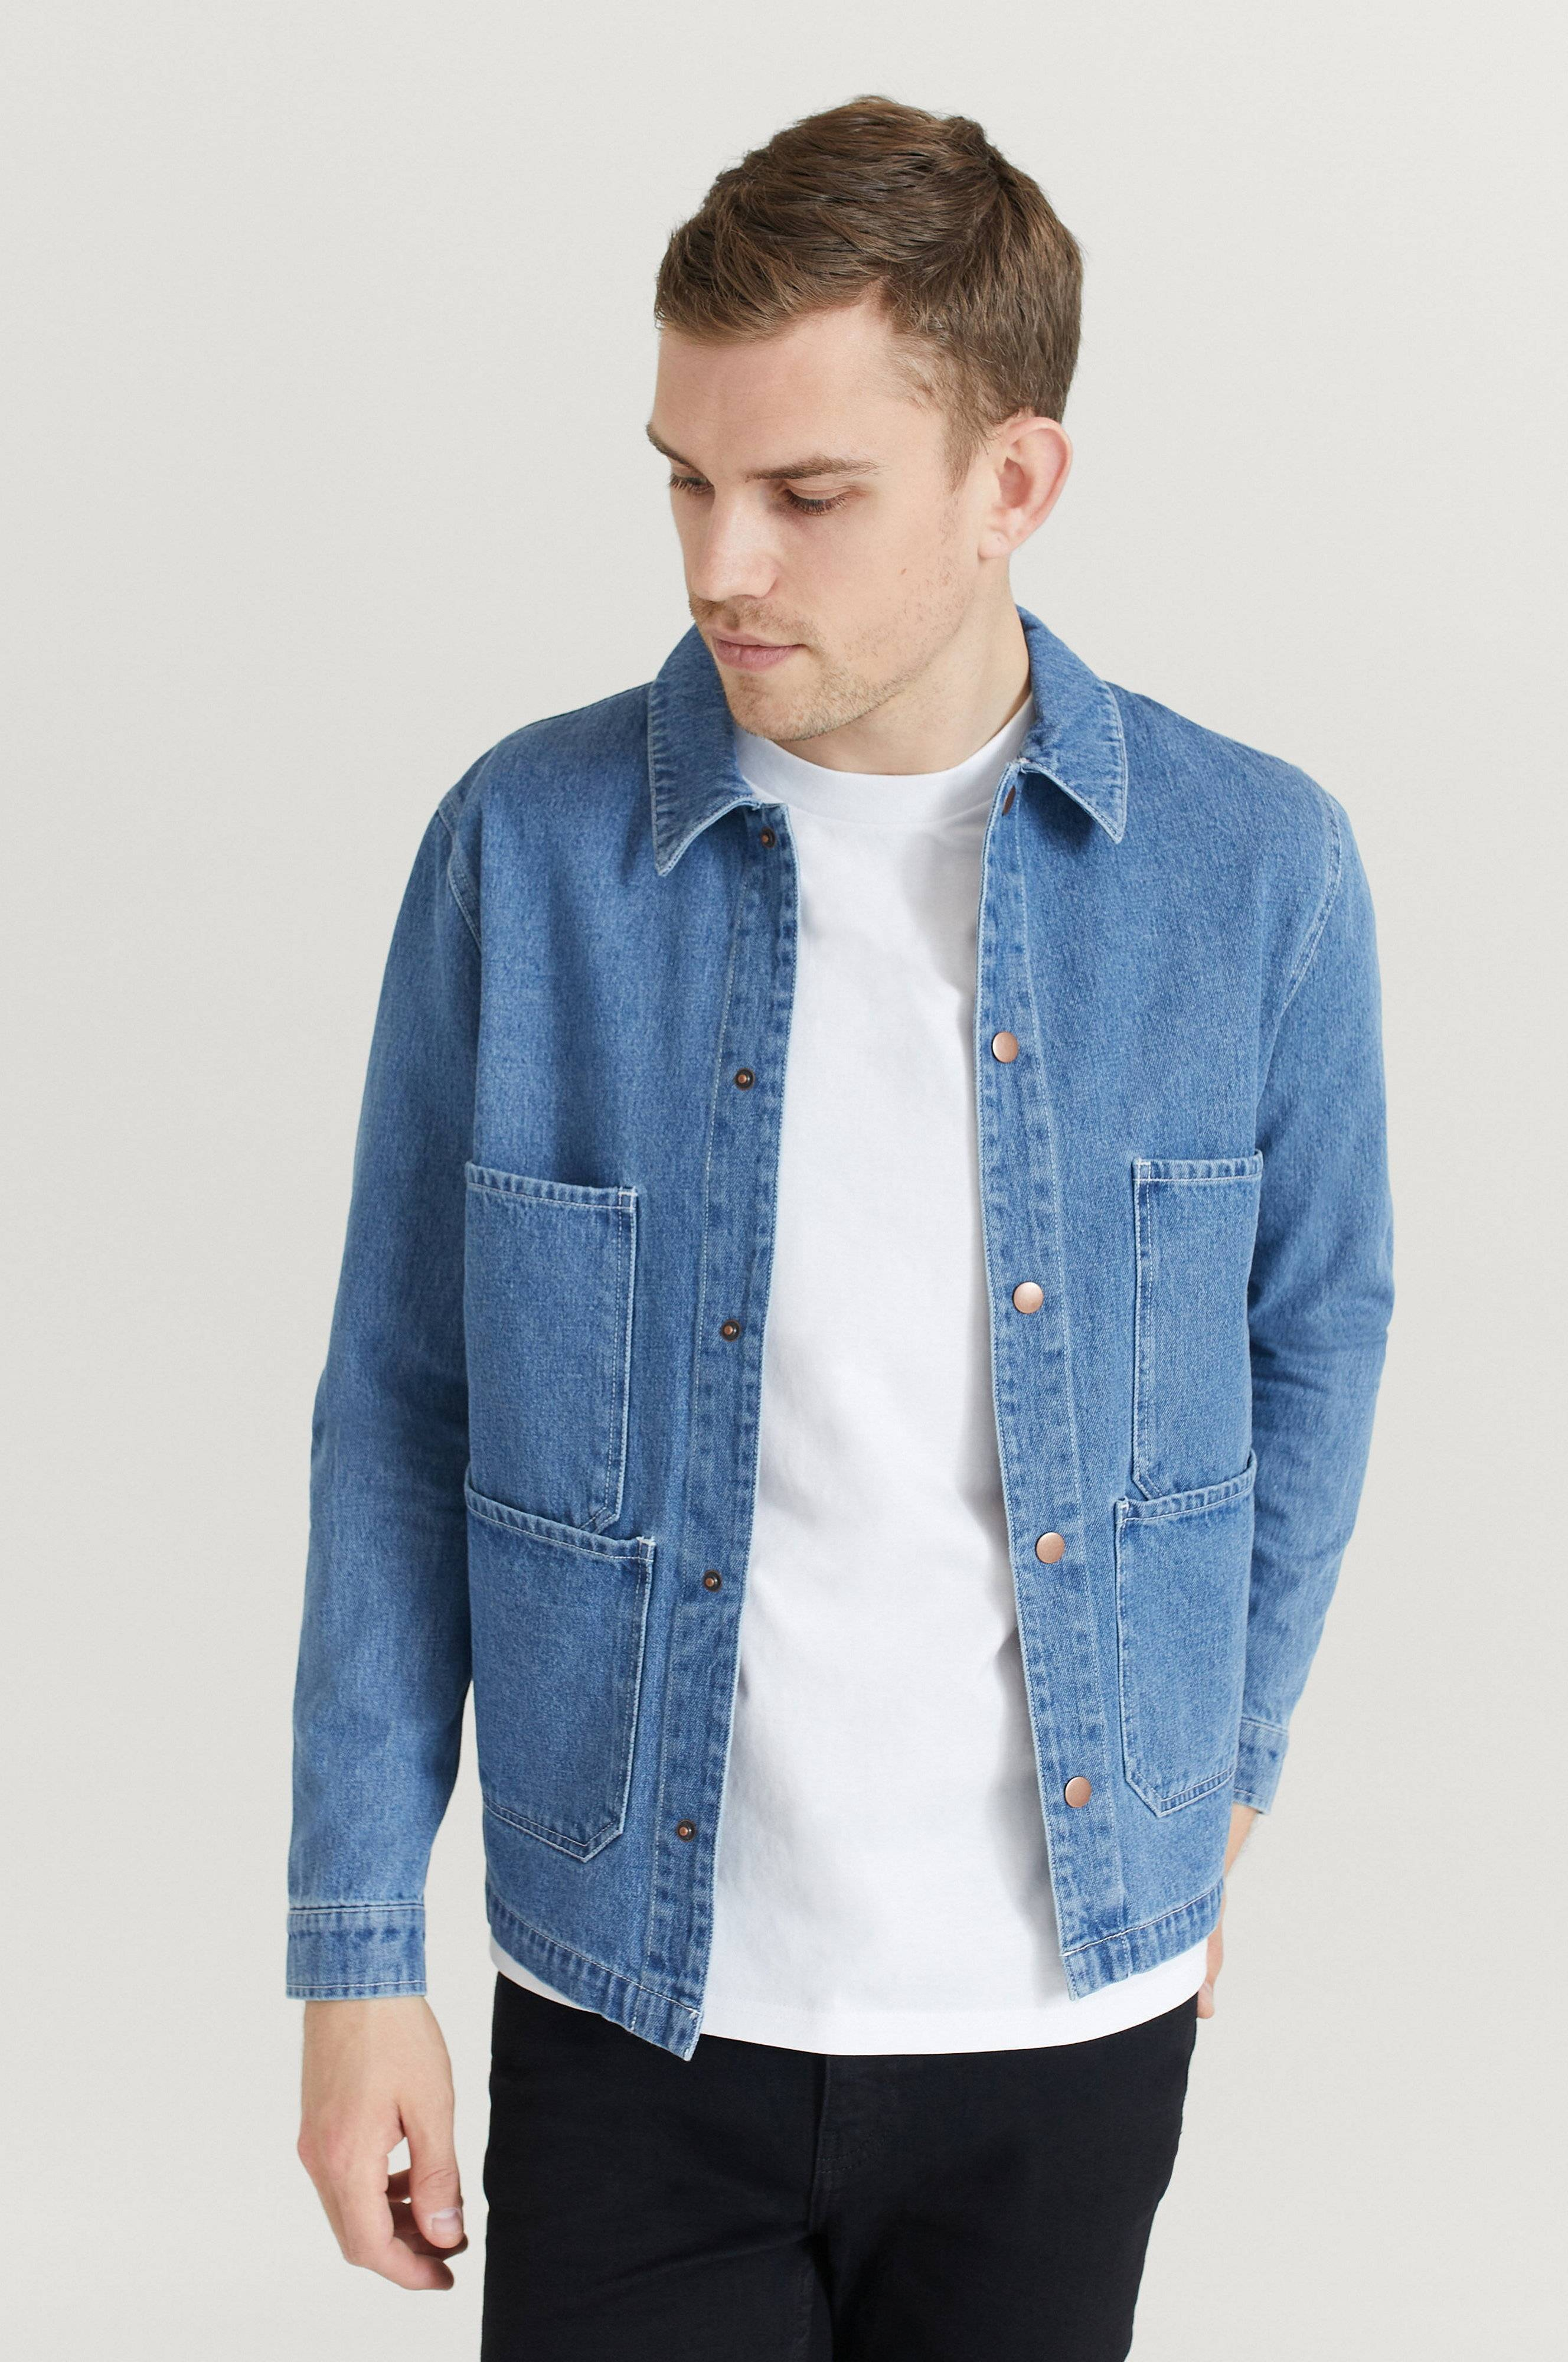 Legends Overshirt Dover Denim Jacket Blå